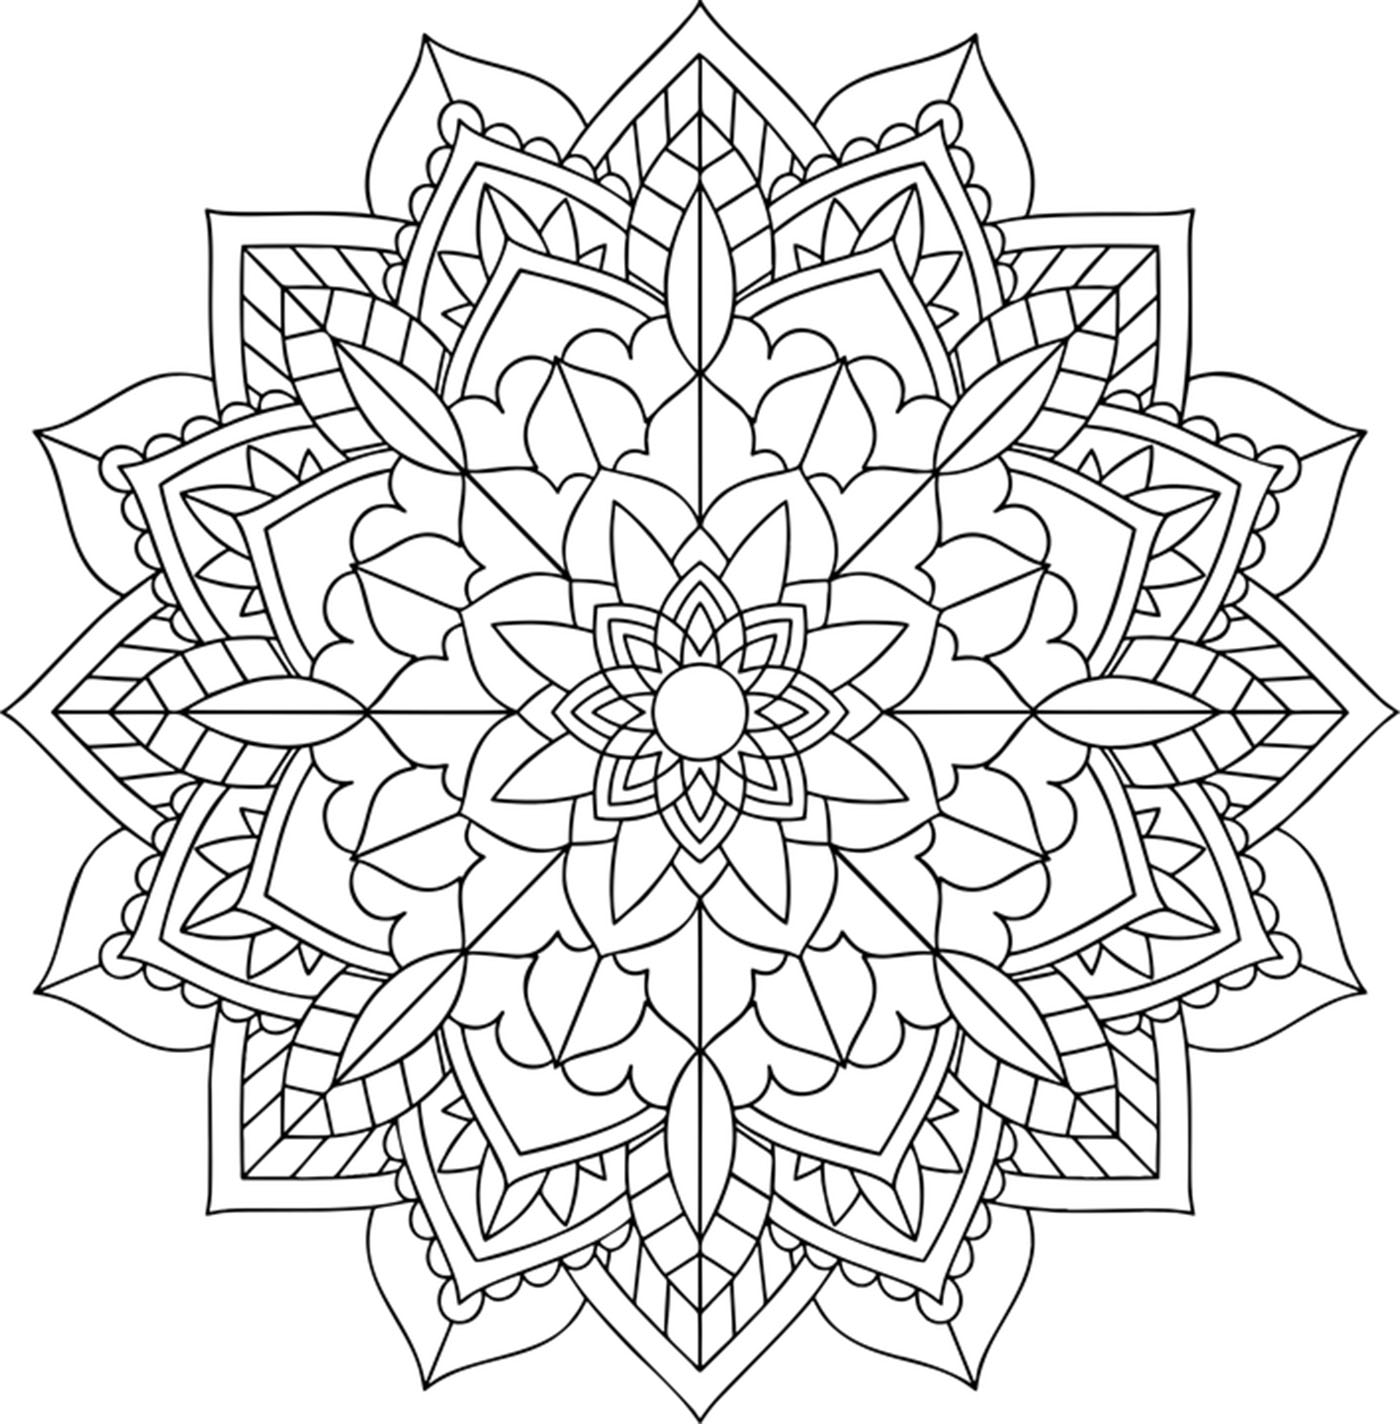 simple mandalas to color easy flower with leaves simple mandalas 100 mandalas simple color mandalas to